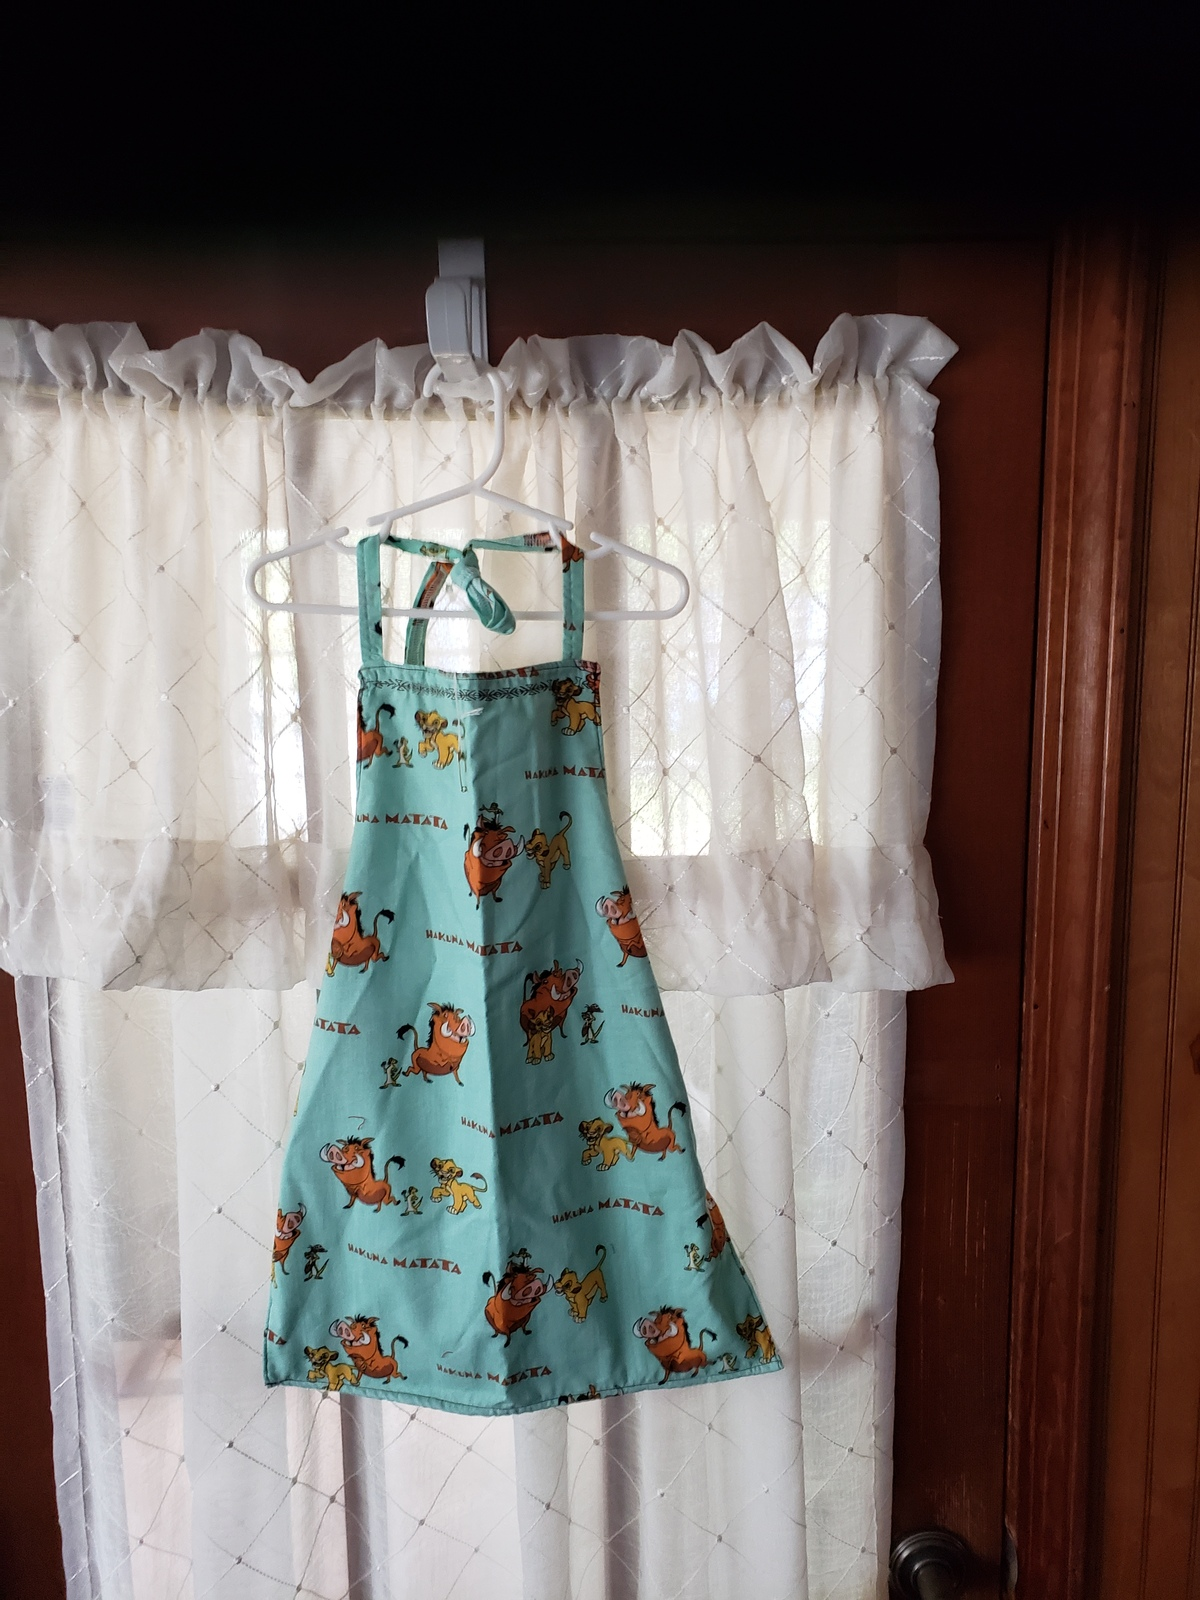 Lion King Child's Cotton Apron Lined - Child Small (2T - 4T)  - $12.99